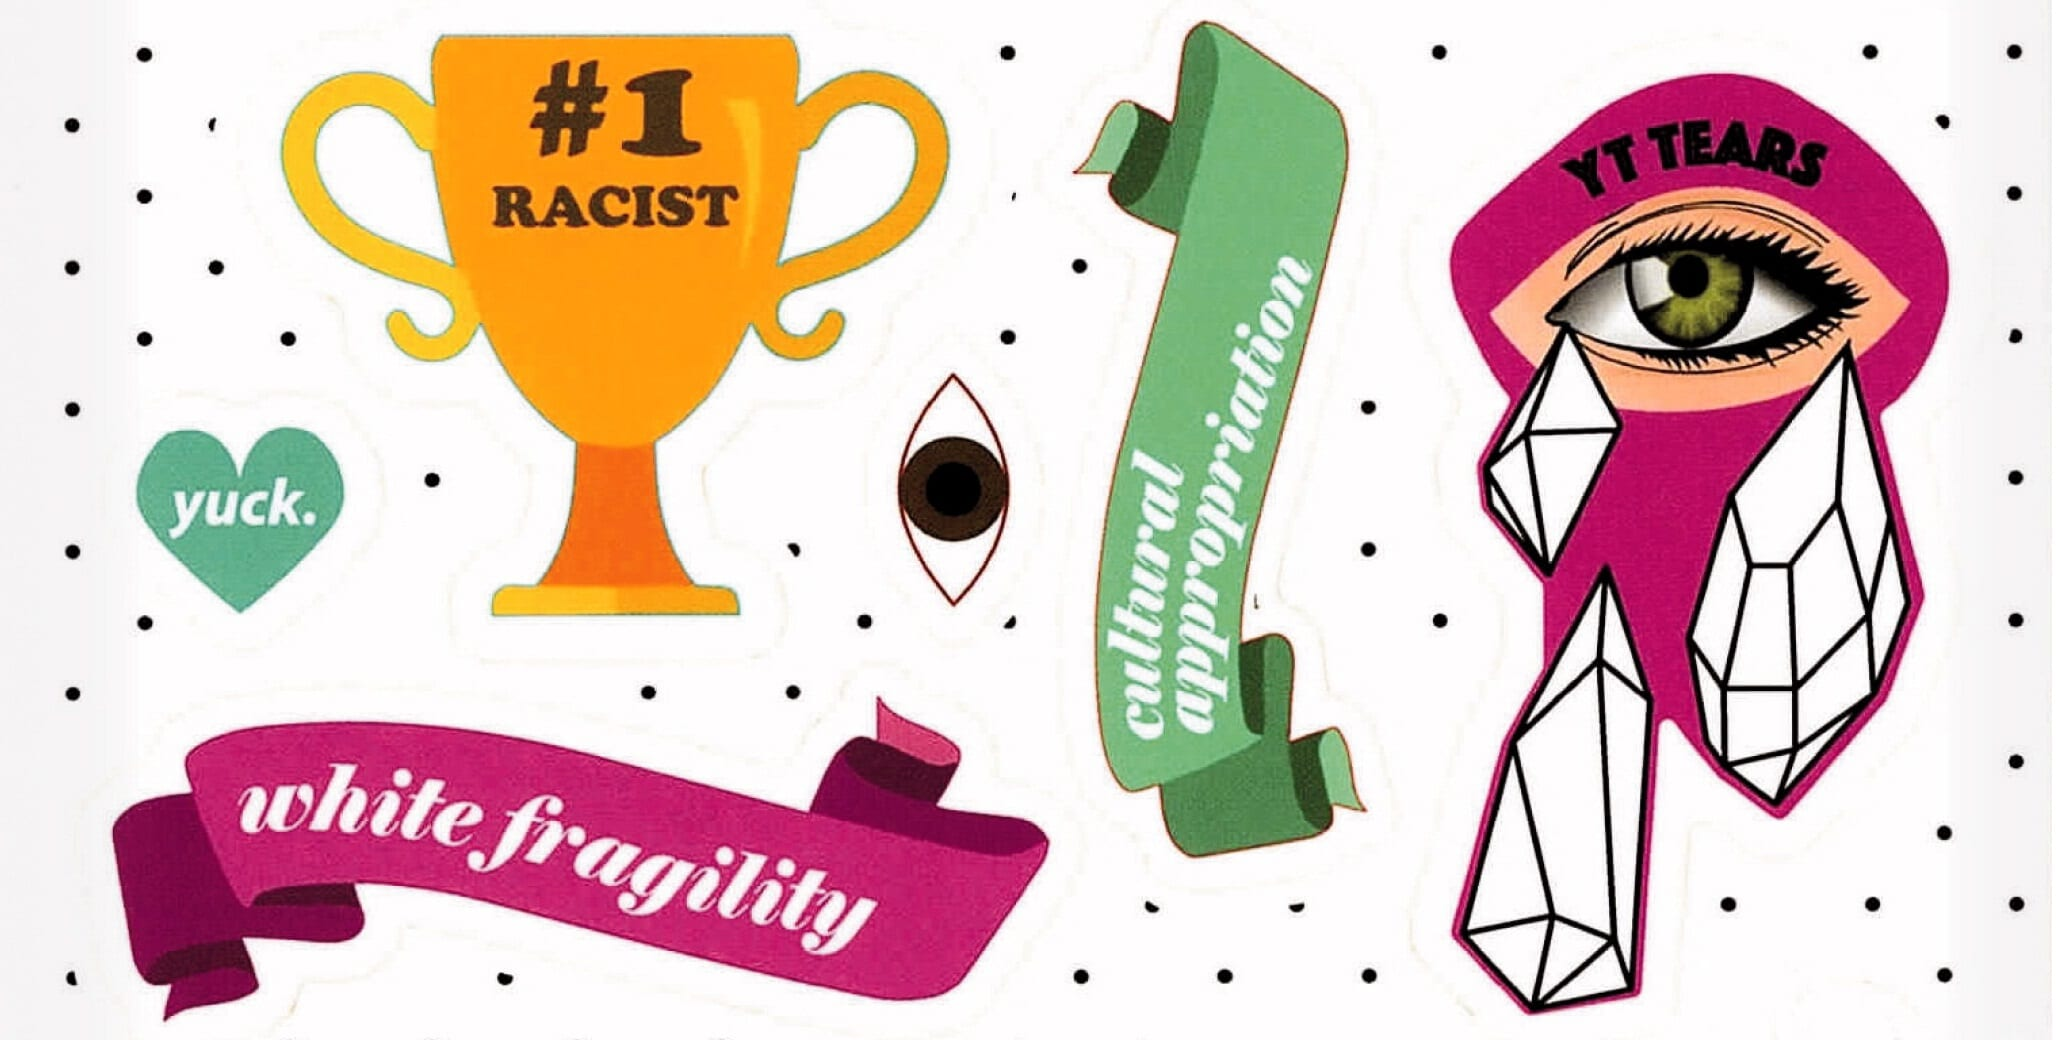 """Detail of a sticker sheet featuring various images to be posted around one's institution, including the following: A trophy that reads """"#1 Racist,"""" a heart reading """"yuck.,"""" a banner that reads """"White Fragility,"""" a banner that reads """"Cultural Appropriation,"""" and an image of an eye with crystal tears that reads """"YT Tears."""""""